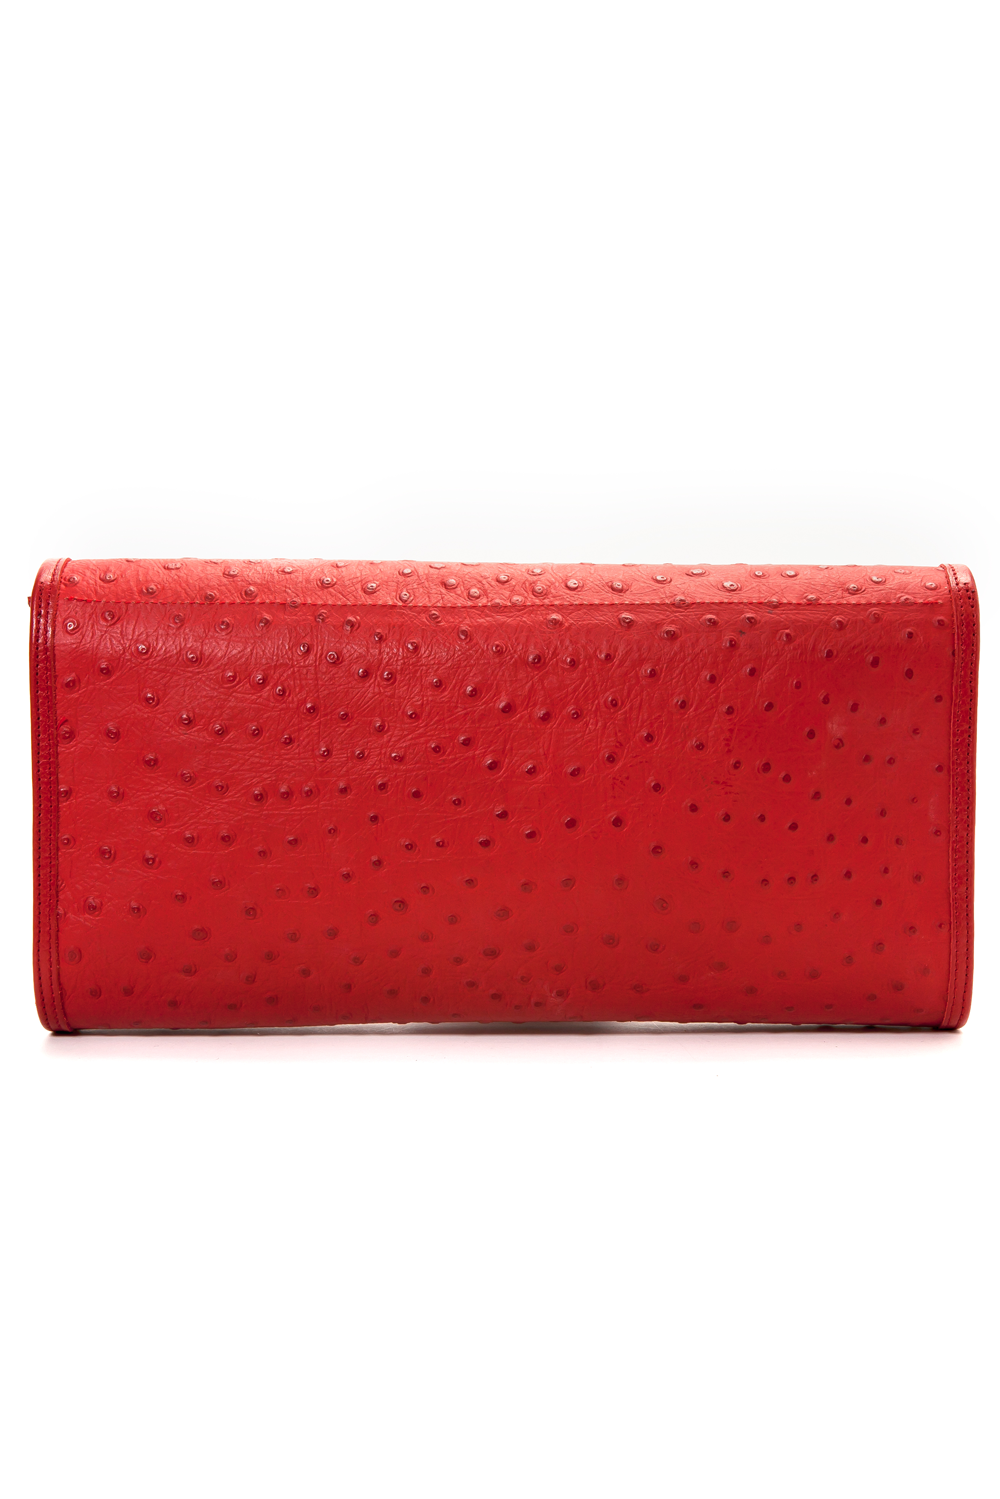 'Cara' Envelope Clutch in Red Ostrich Print Leather | Mel Boteri | Back View